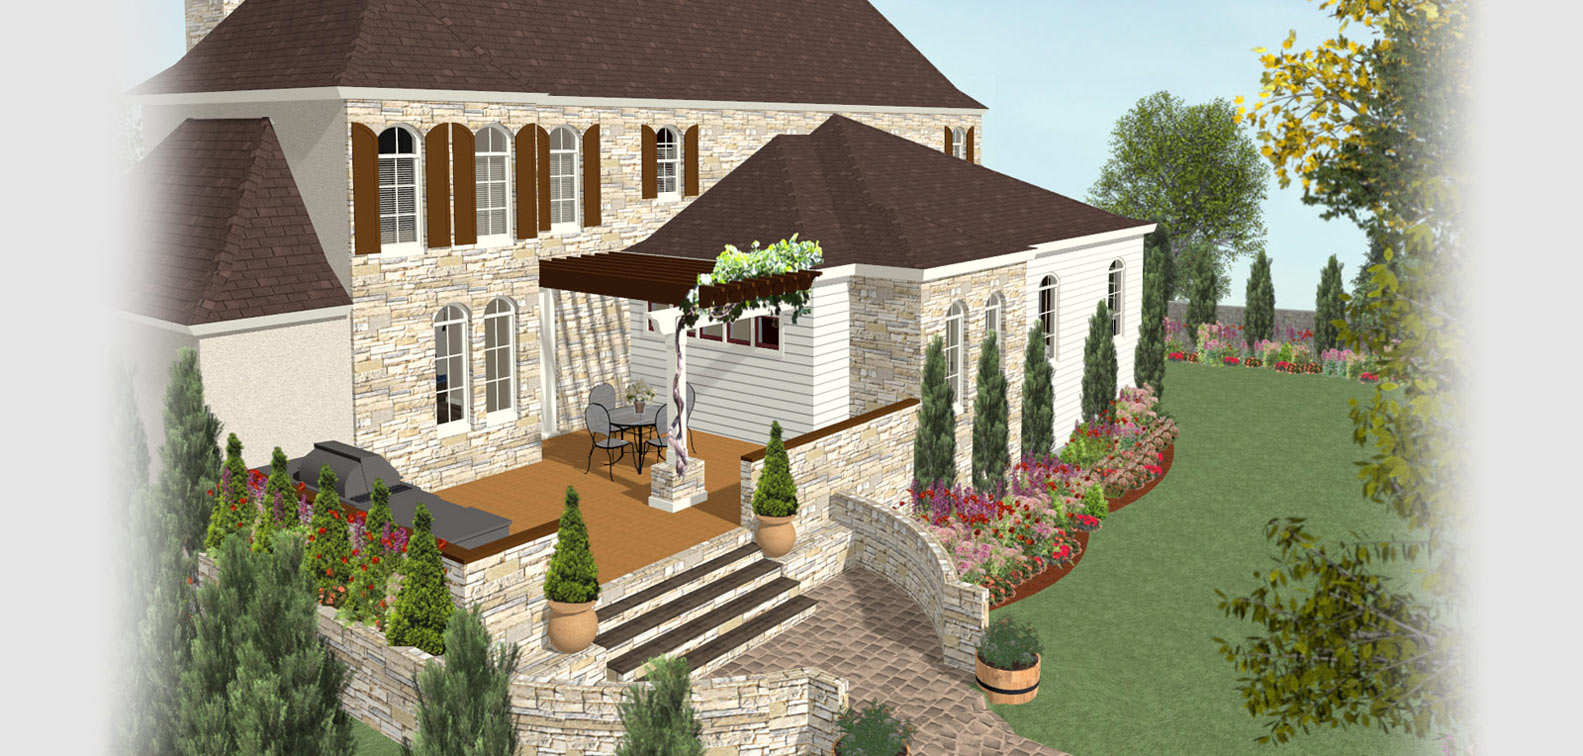 Home designer software for deck and landscape software projects a backyard deck with landscaping deck designer tools baanklon Gallery